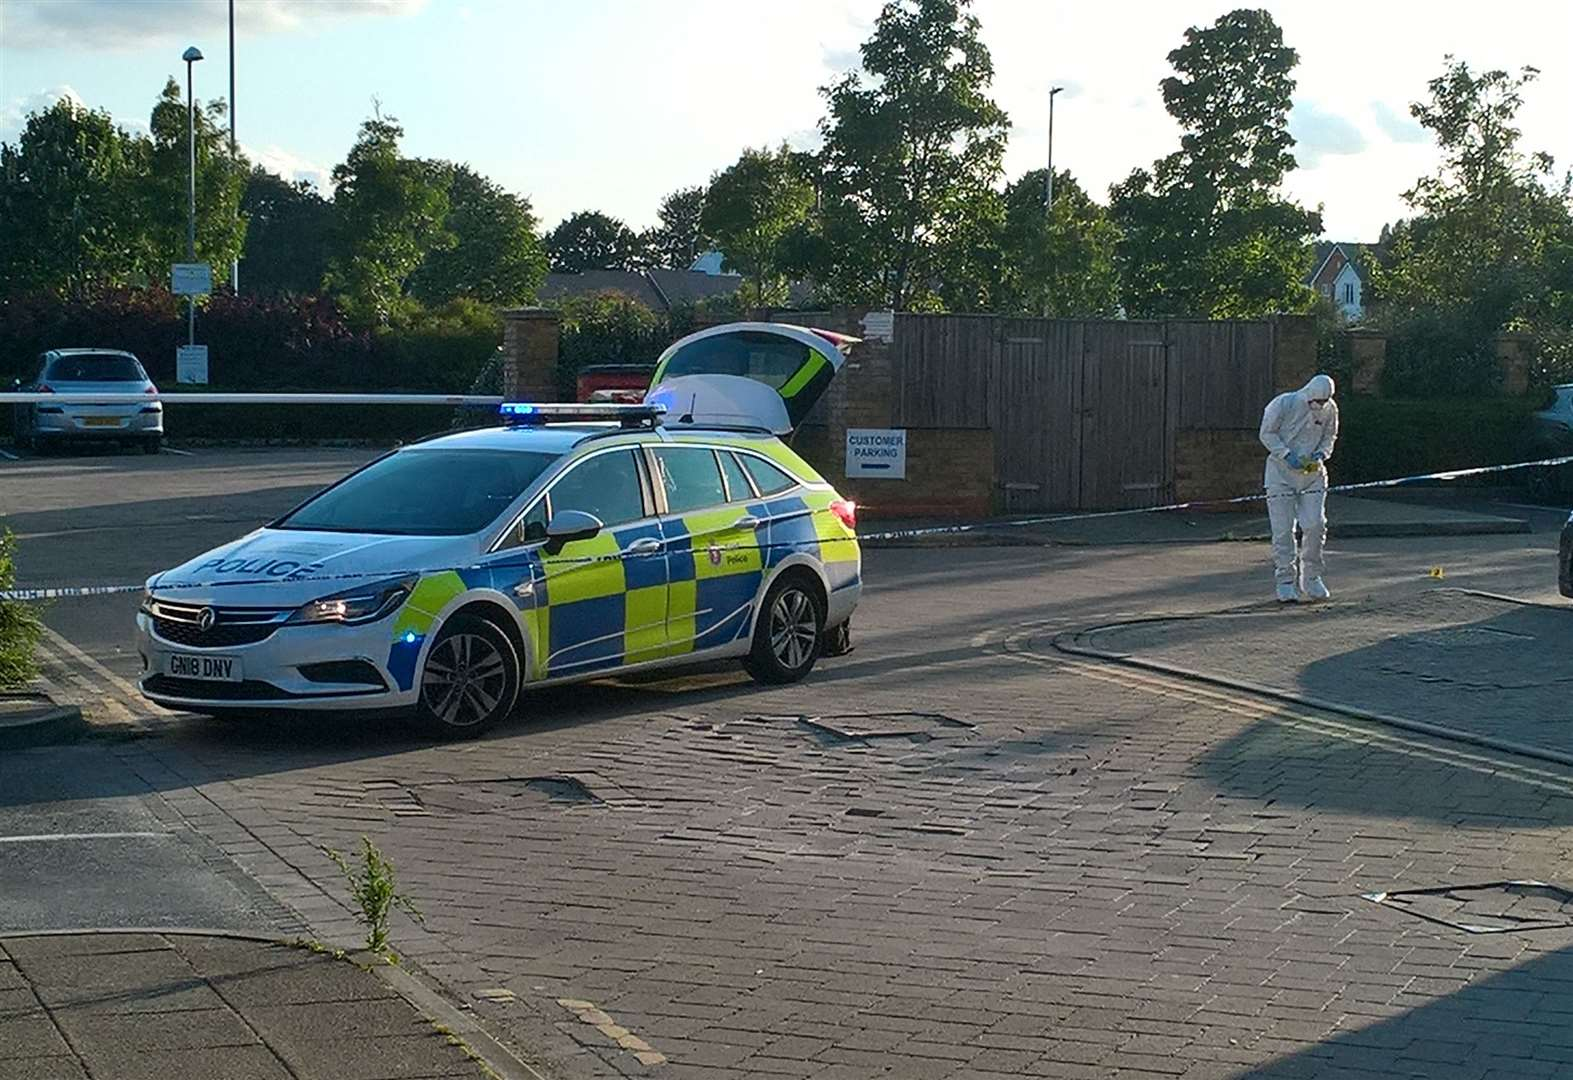 Man in court after car park stabbing